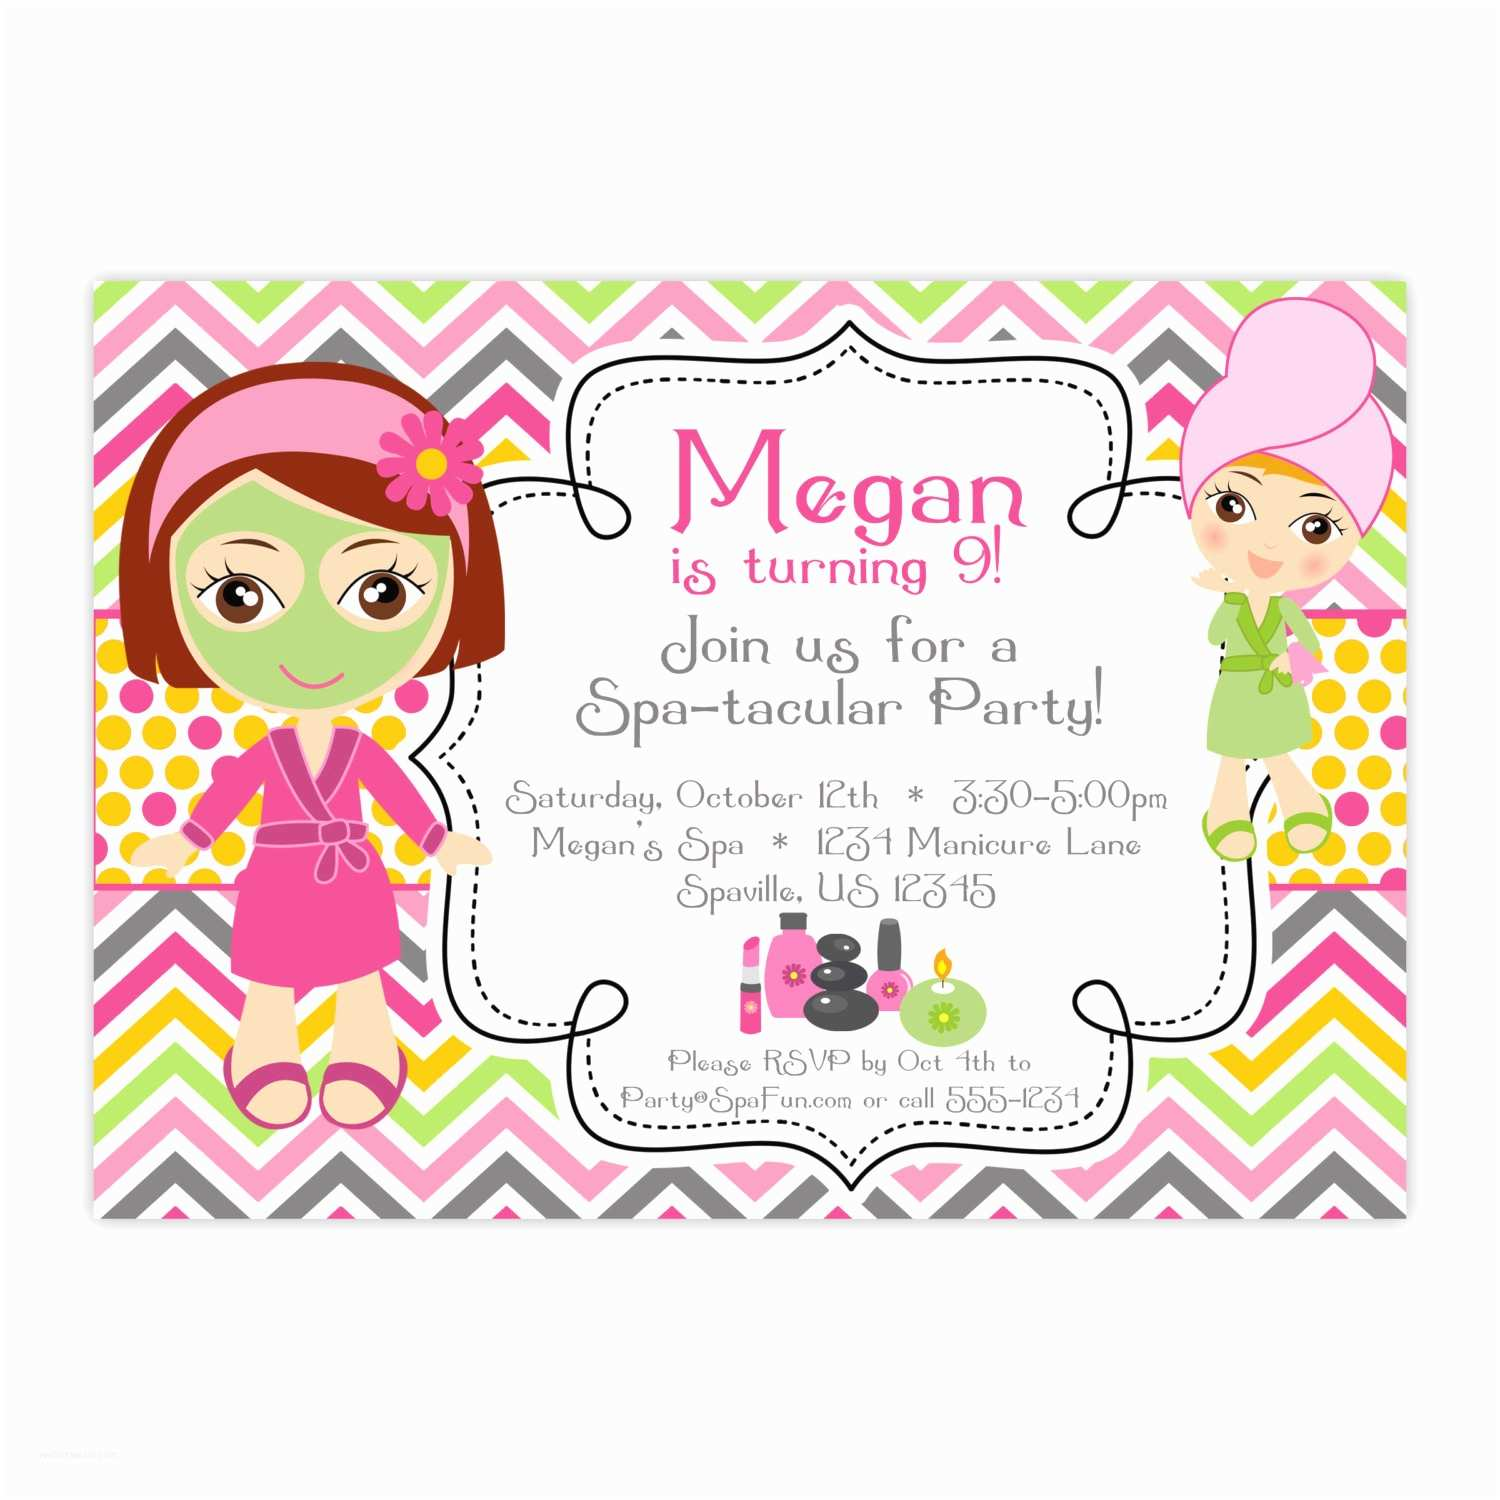 Spa Party Invitations Spa Party Invitation Pink orange Chevron Polka Dots